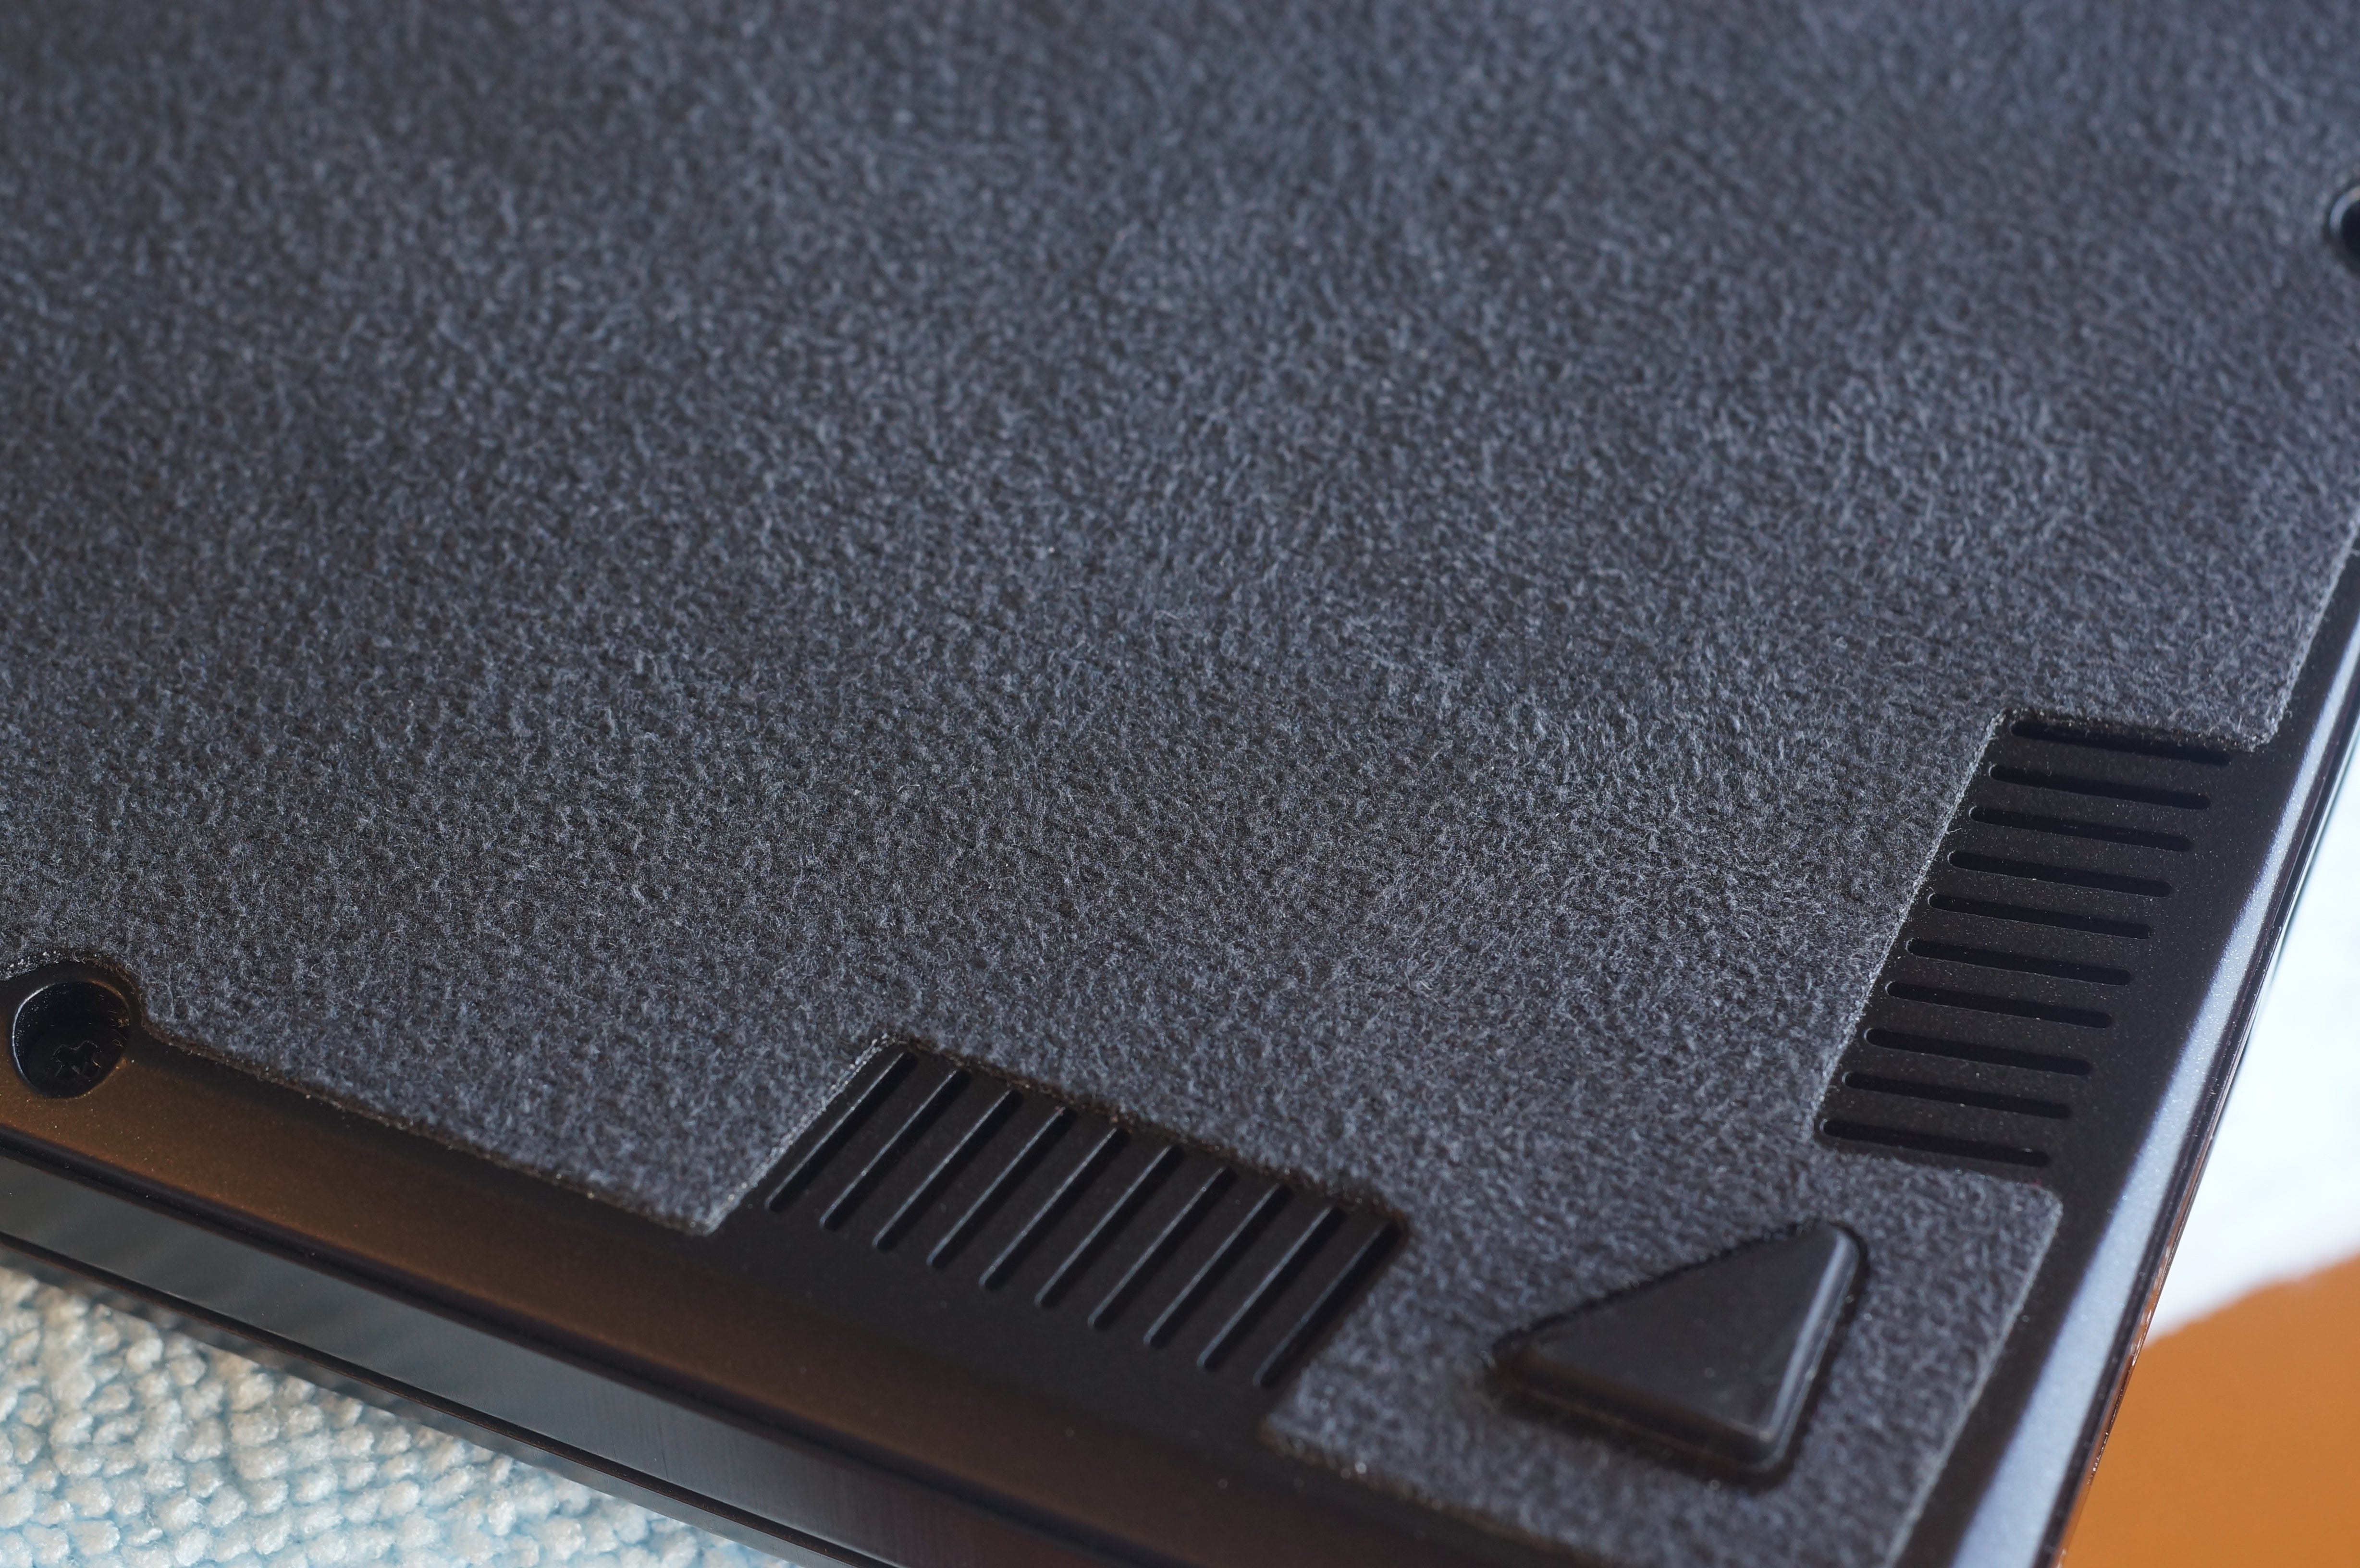 The entire bottom of the MSI GS63VR Stealth is covered with a suede-like  material that actually makes it comfortable to use on your lap.